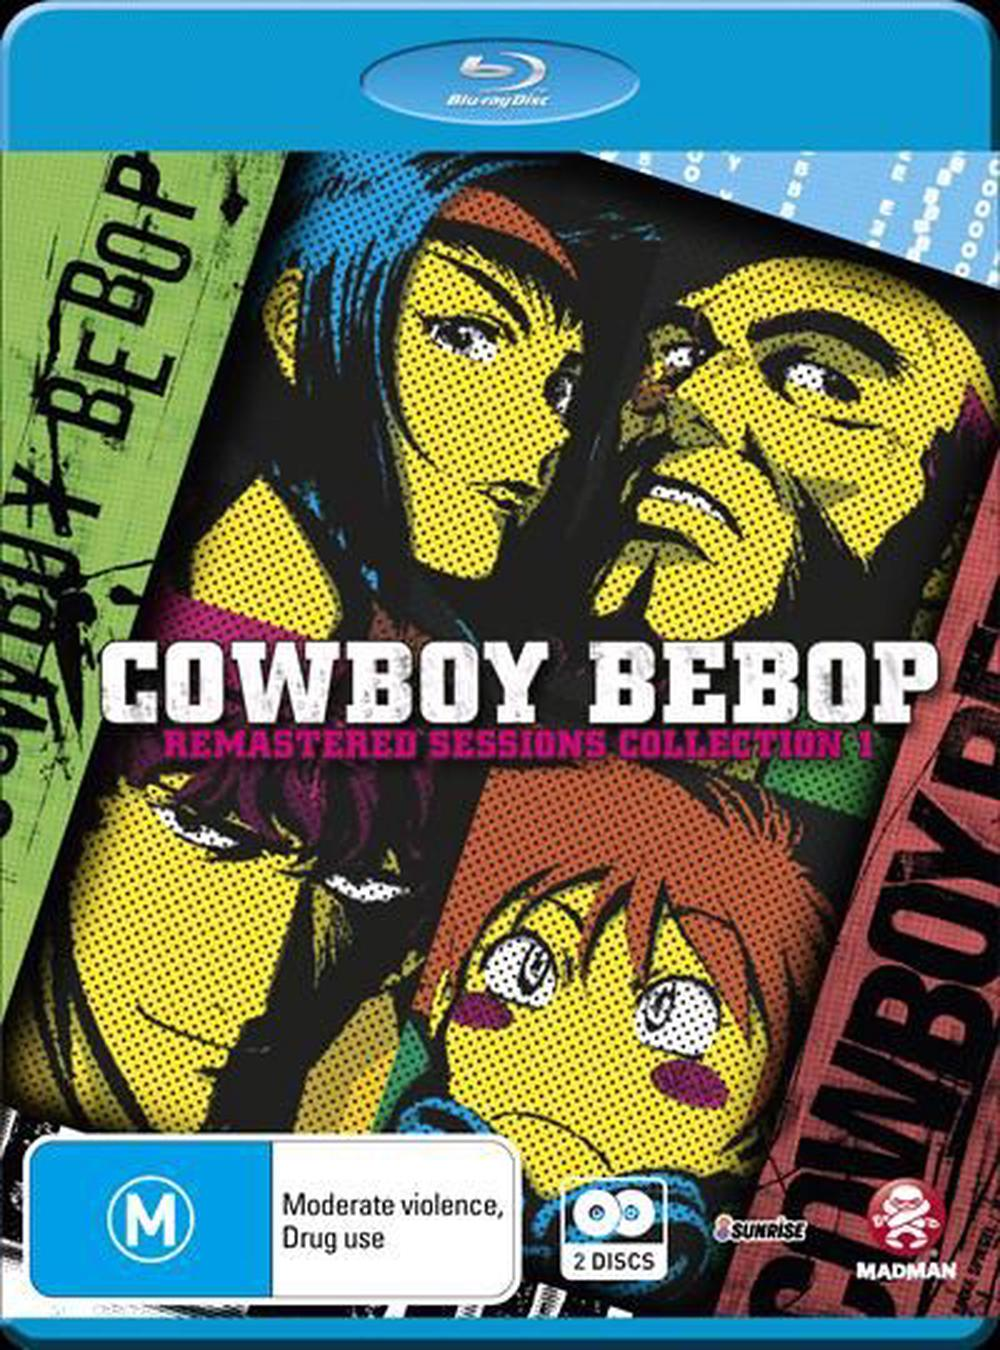 Cowboy Bebop - Remastered Sessions : Collection 1 : Eps 1-13